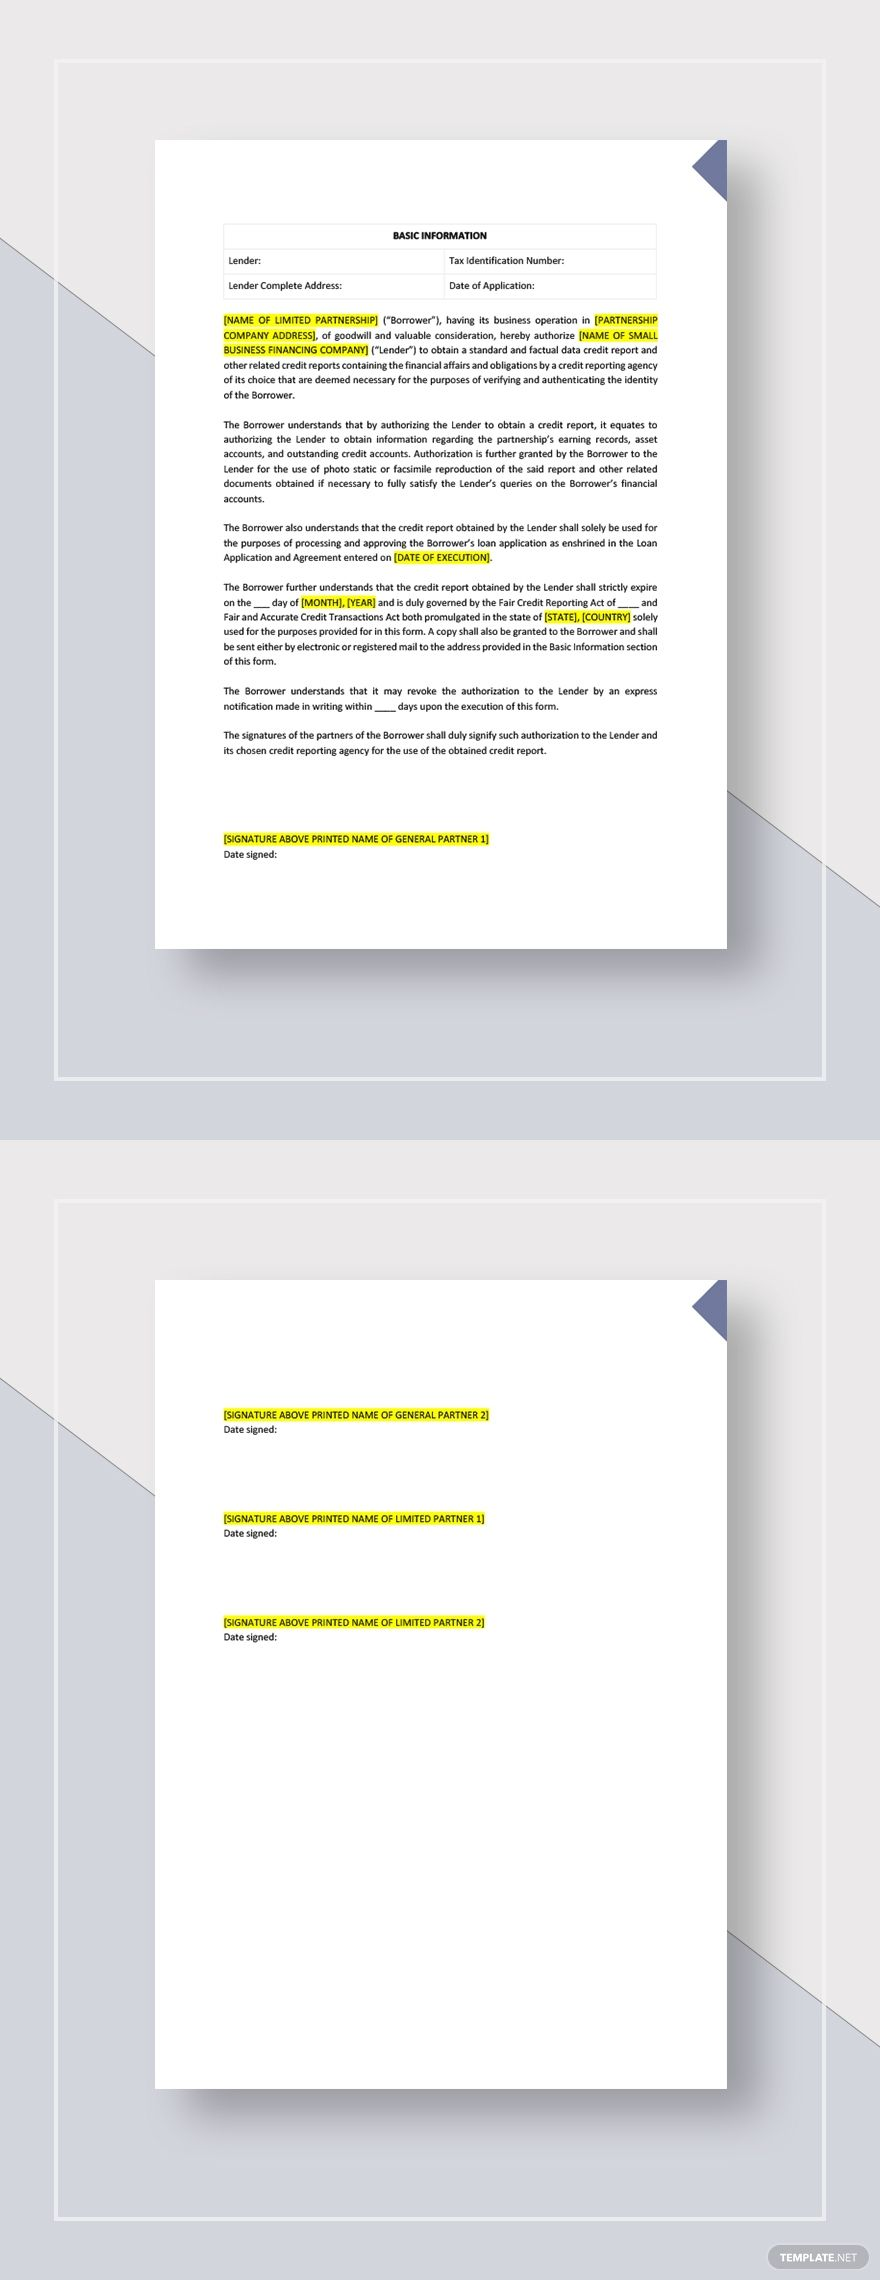 Credit Report Authorization Form Template Free Pdf Word Doc Apple Mac Pages Google Docs Document Templates Templates Word Doc